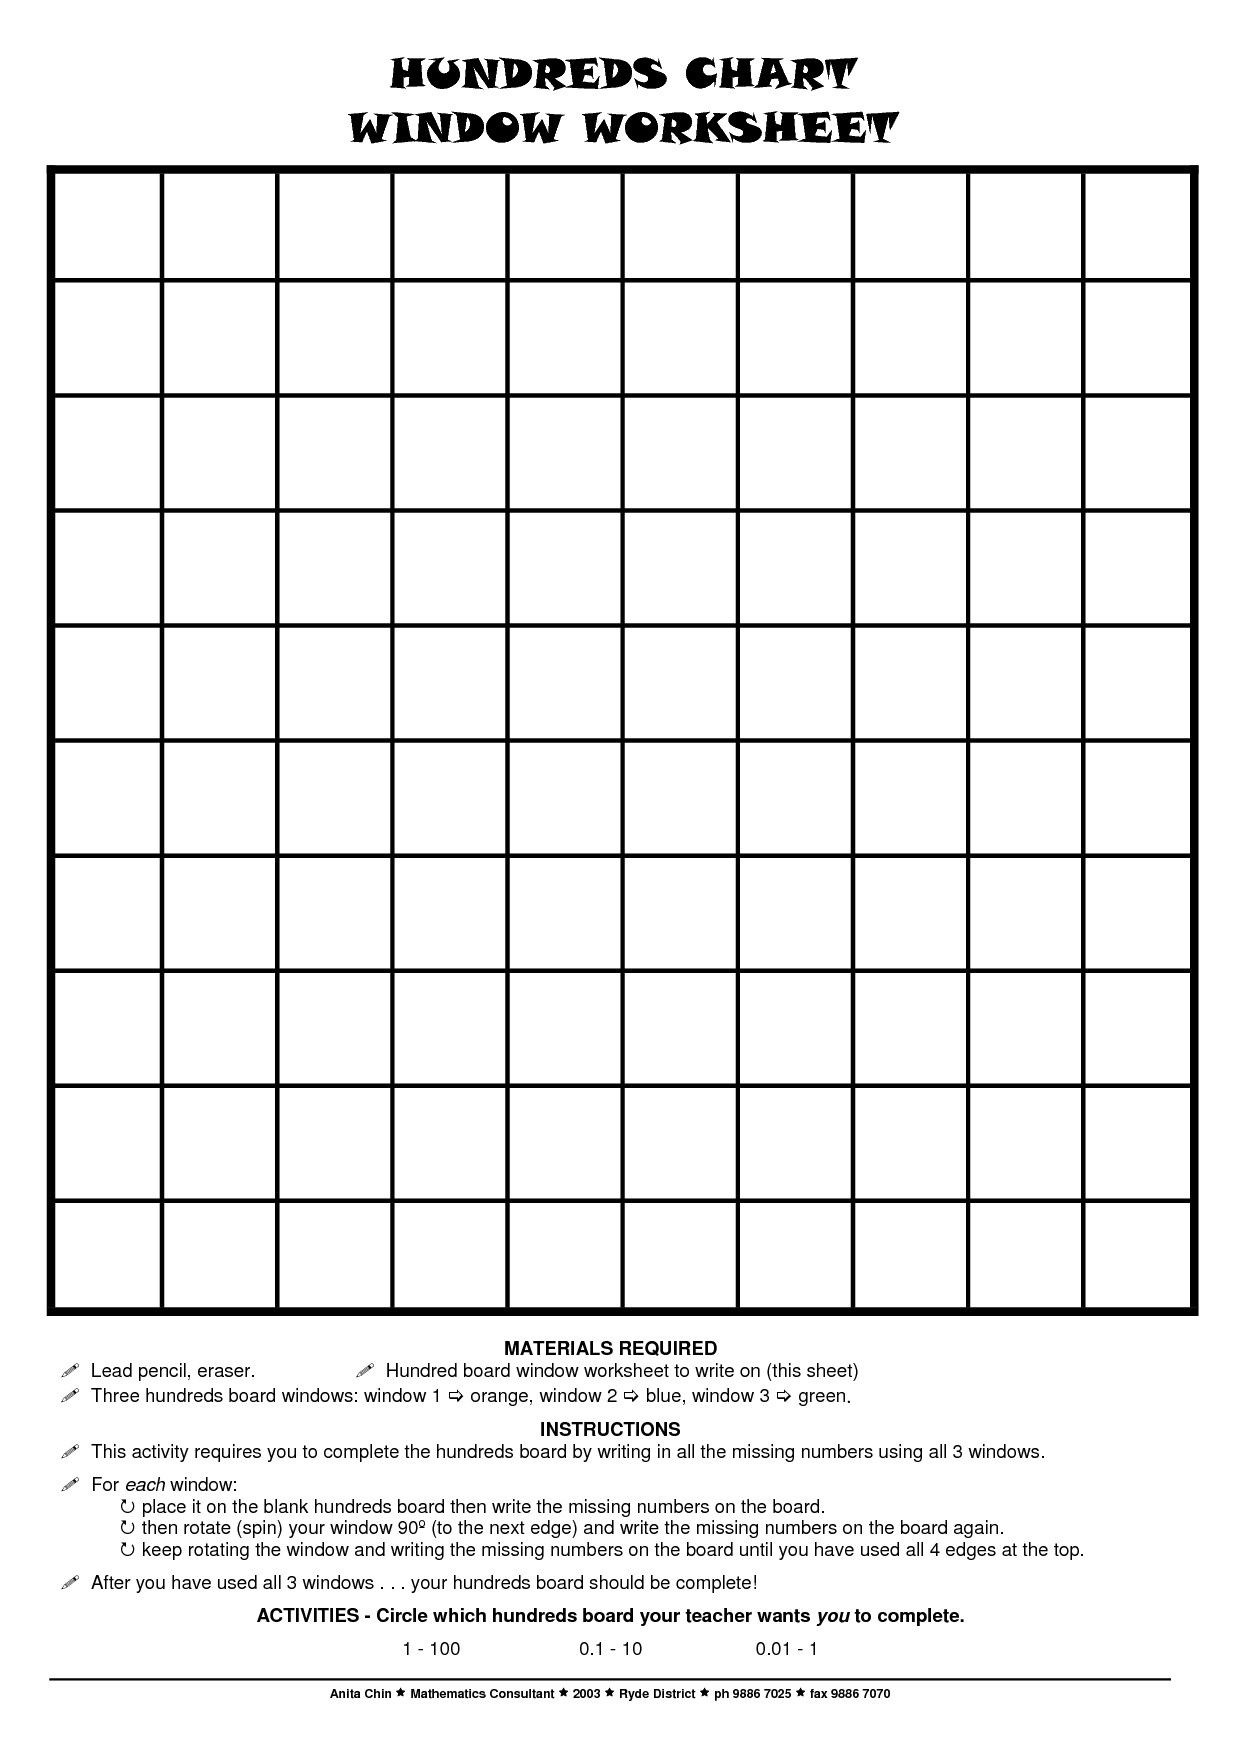 2 Best Images Of Printable Blank 100 Hundreds Chart